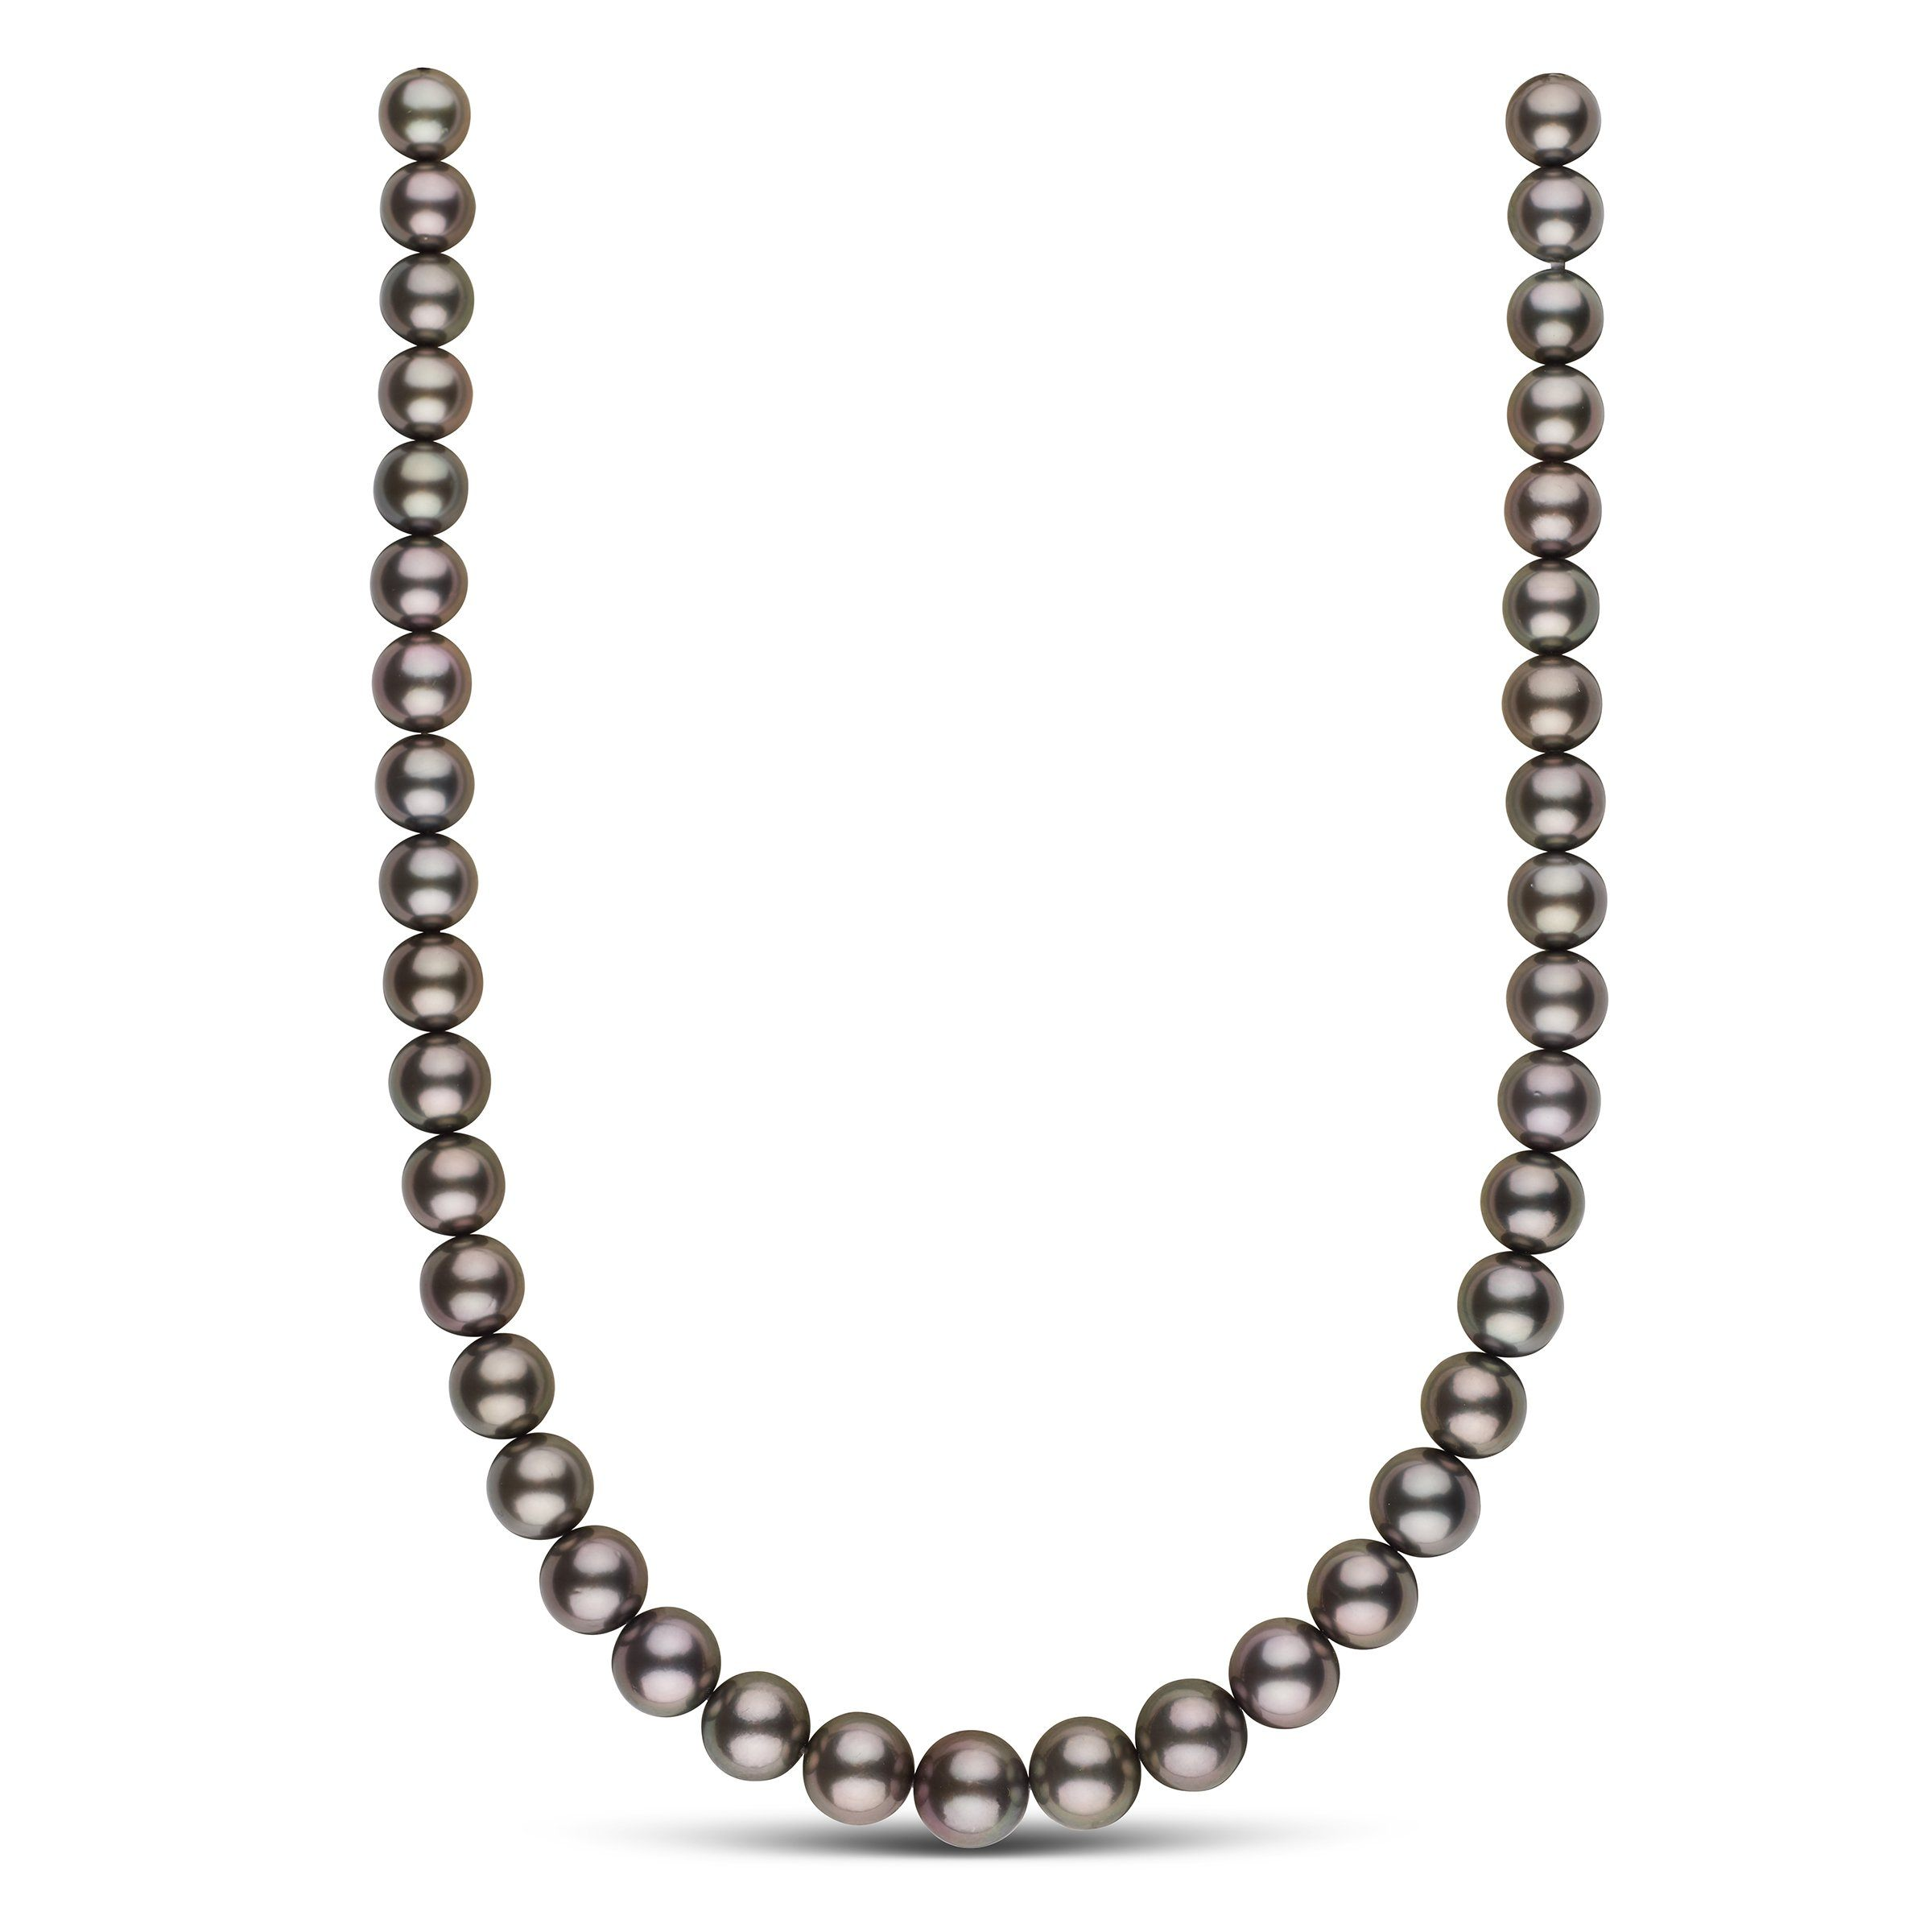 10.0-12.3 mm AAA Tahitian Round Pearl Necklace